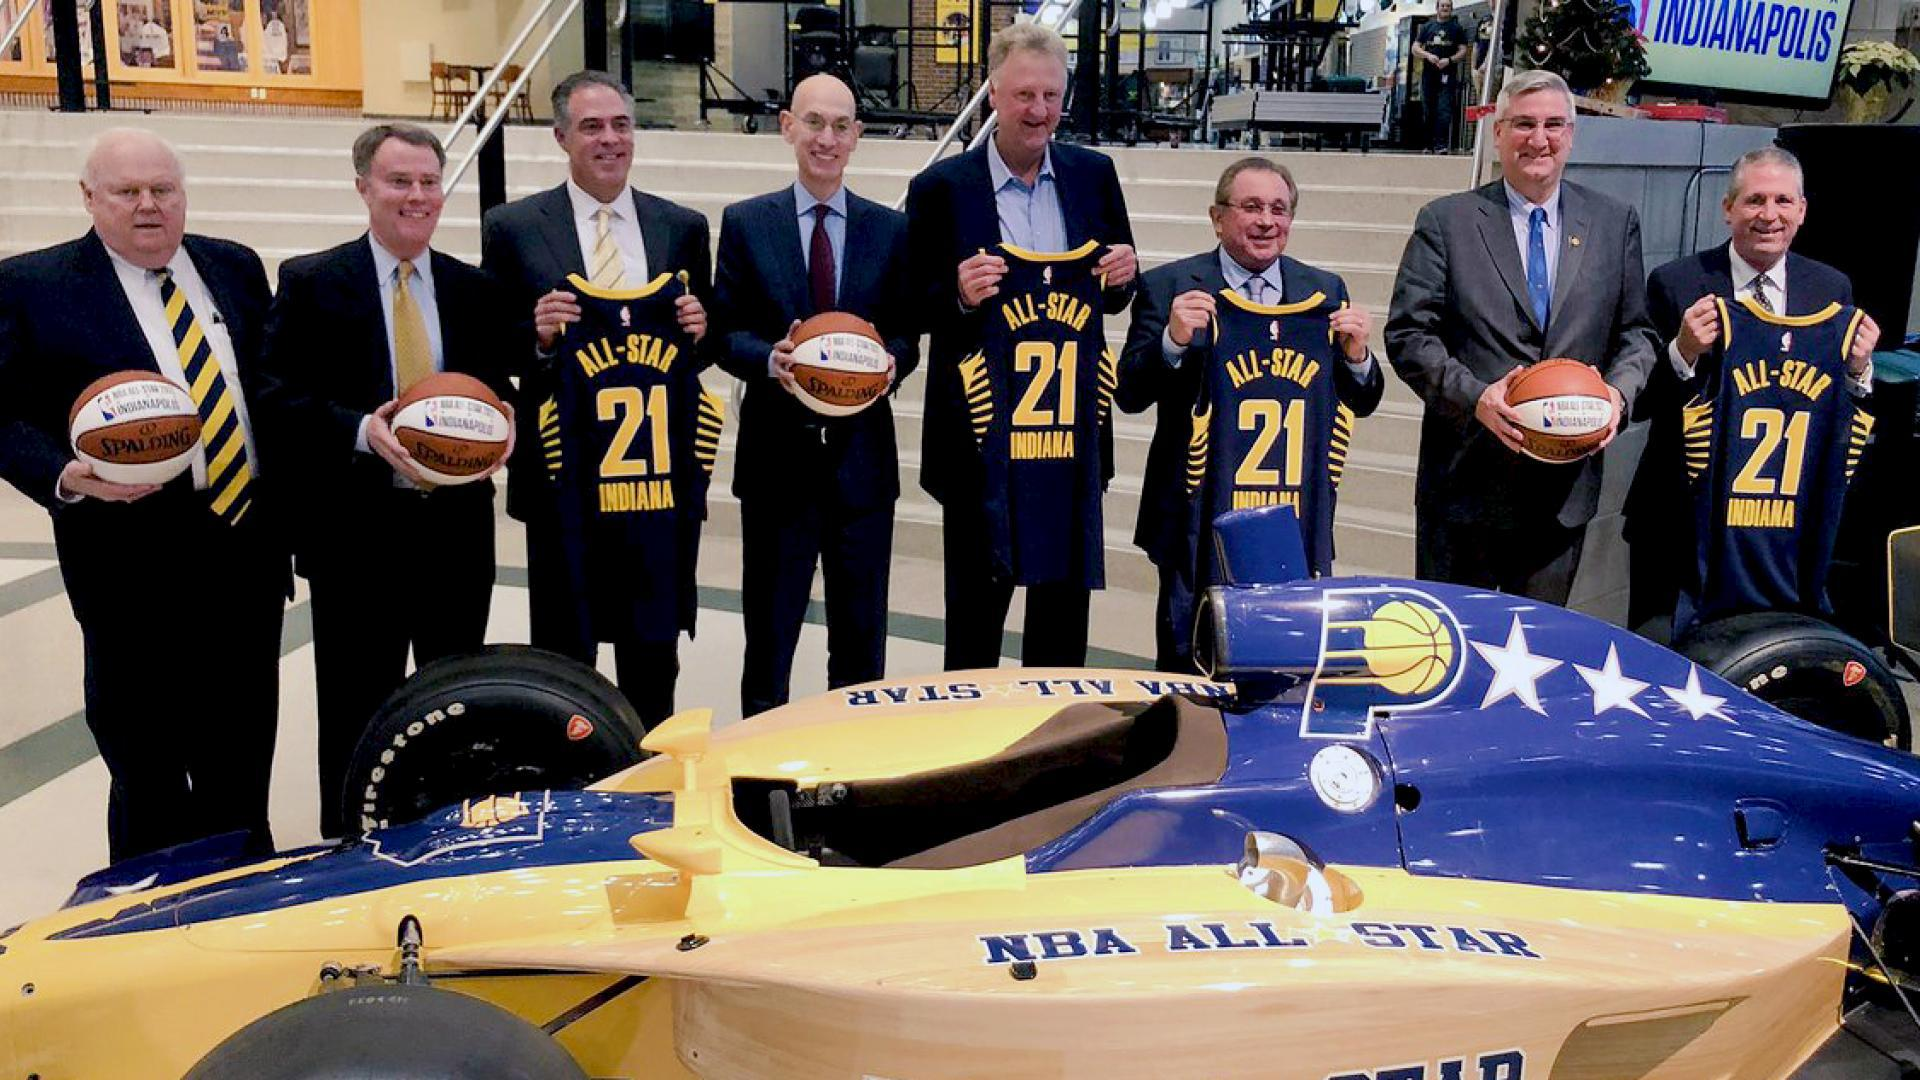 Indianapolis to host NBA All-Star 2024